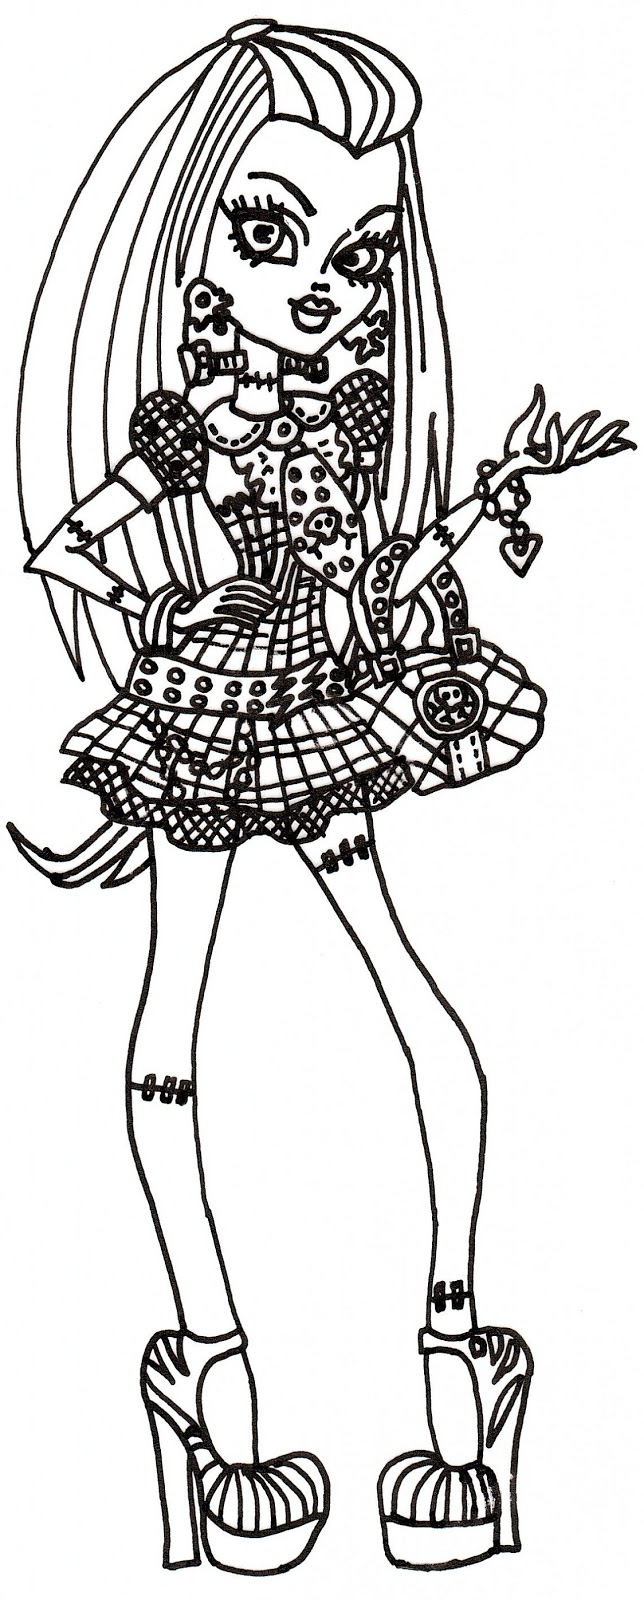 free printable monster high coloring sheet for frankie stein